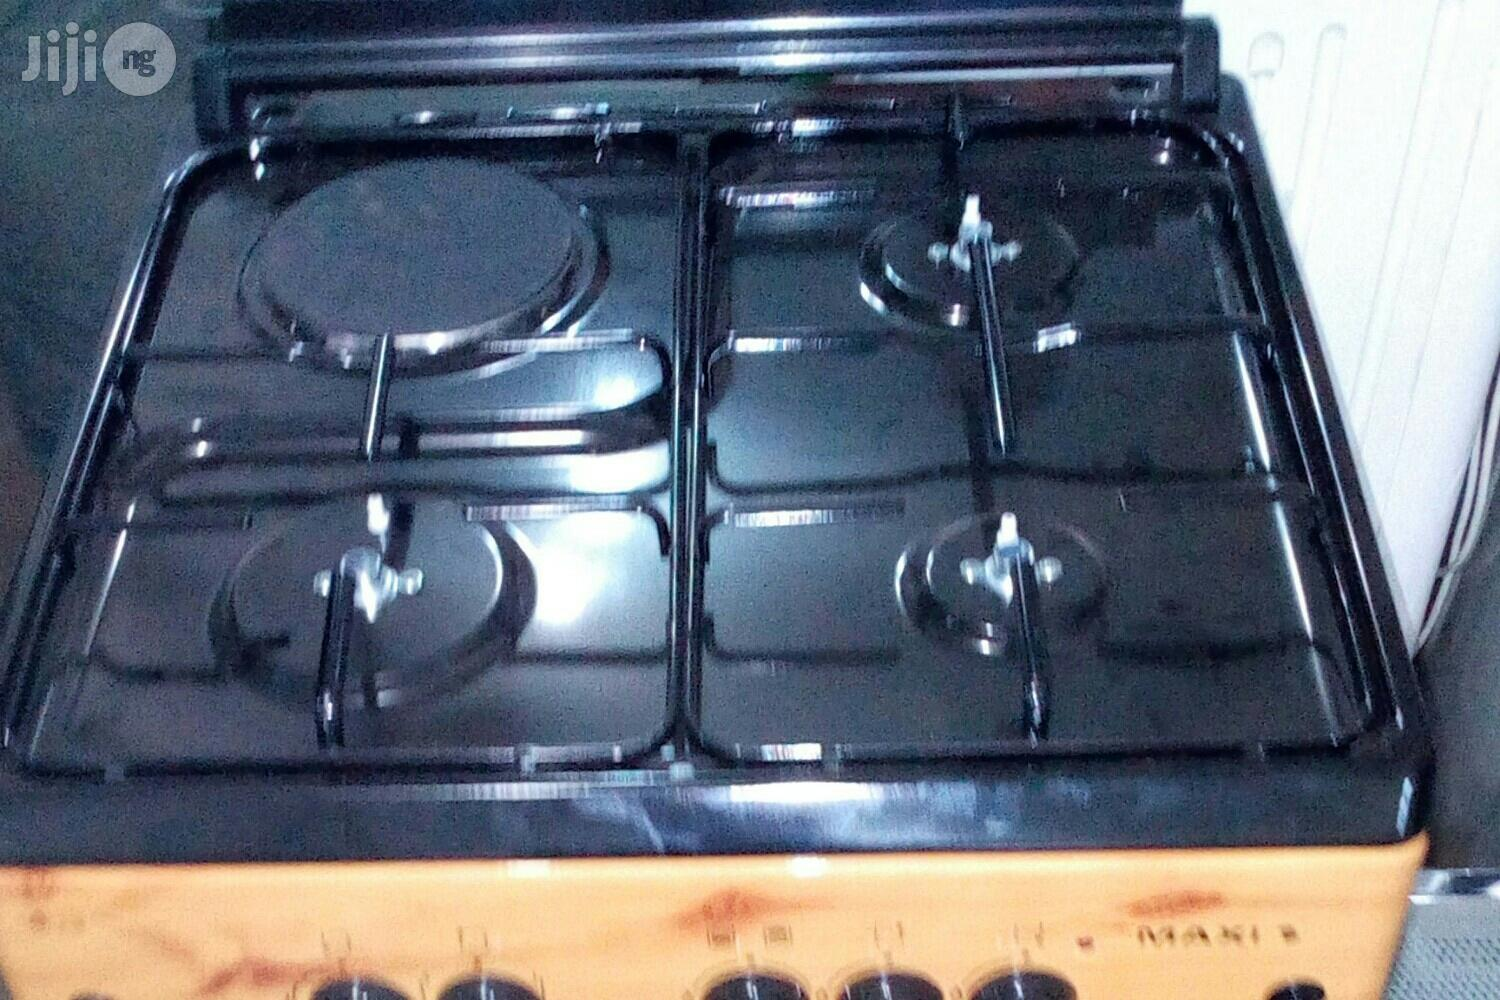 Maxi Gas Cooker | Kitchen Appliances for sale in Gwagwalada, Abuja (FCT) State, Nigeria